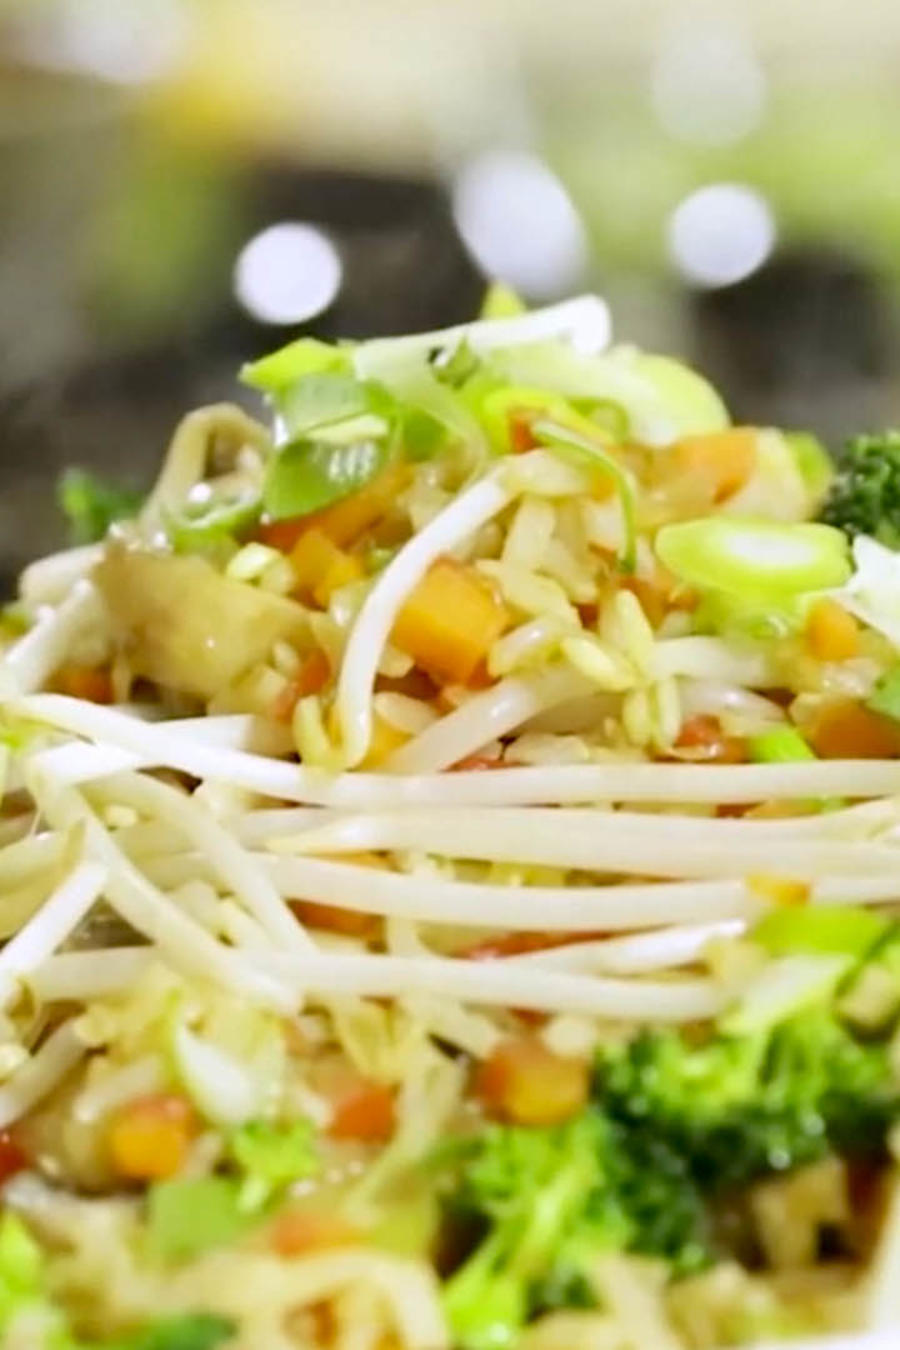 Prepara un delicioso arroz frito estilo Chef James